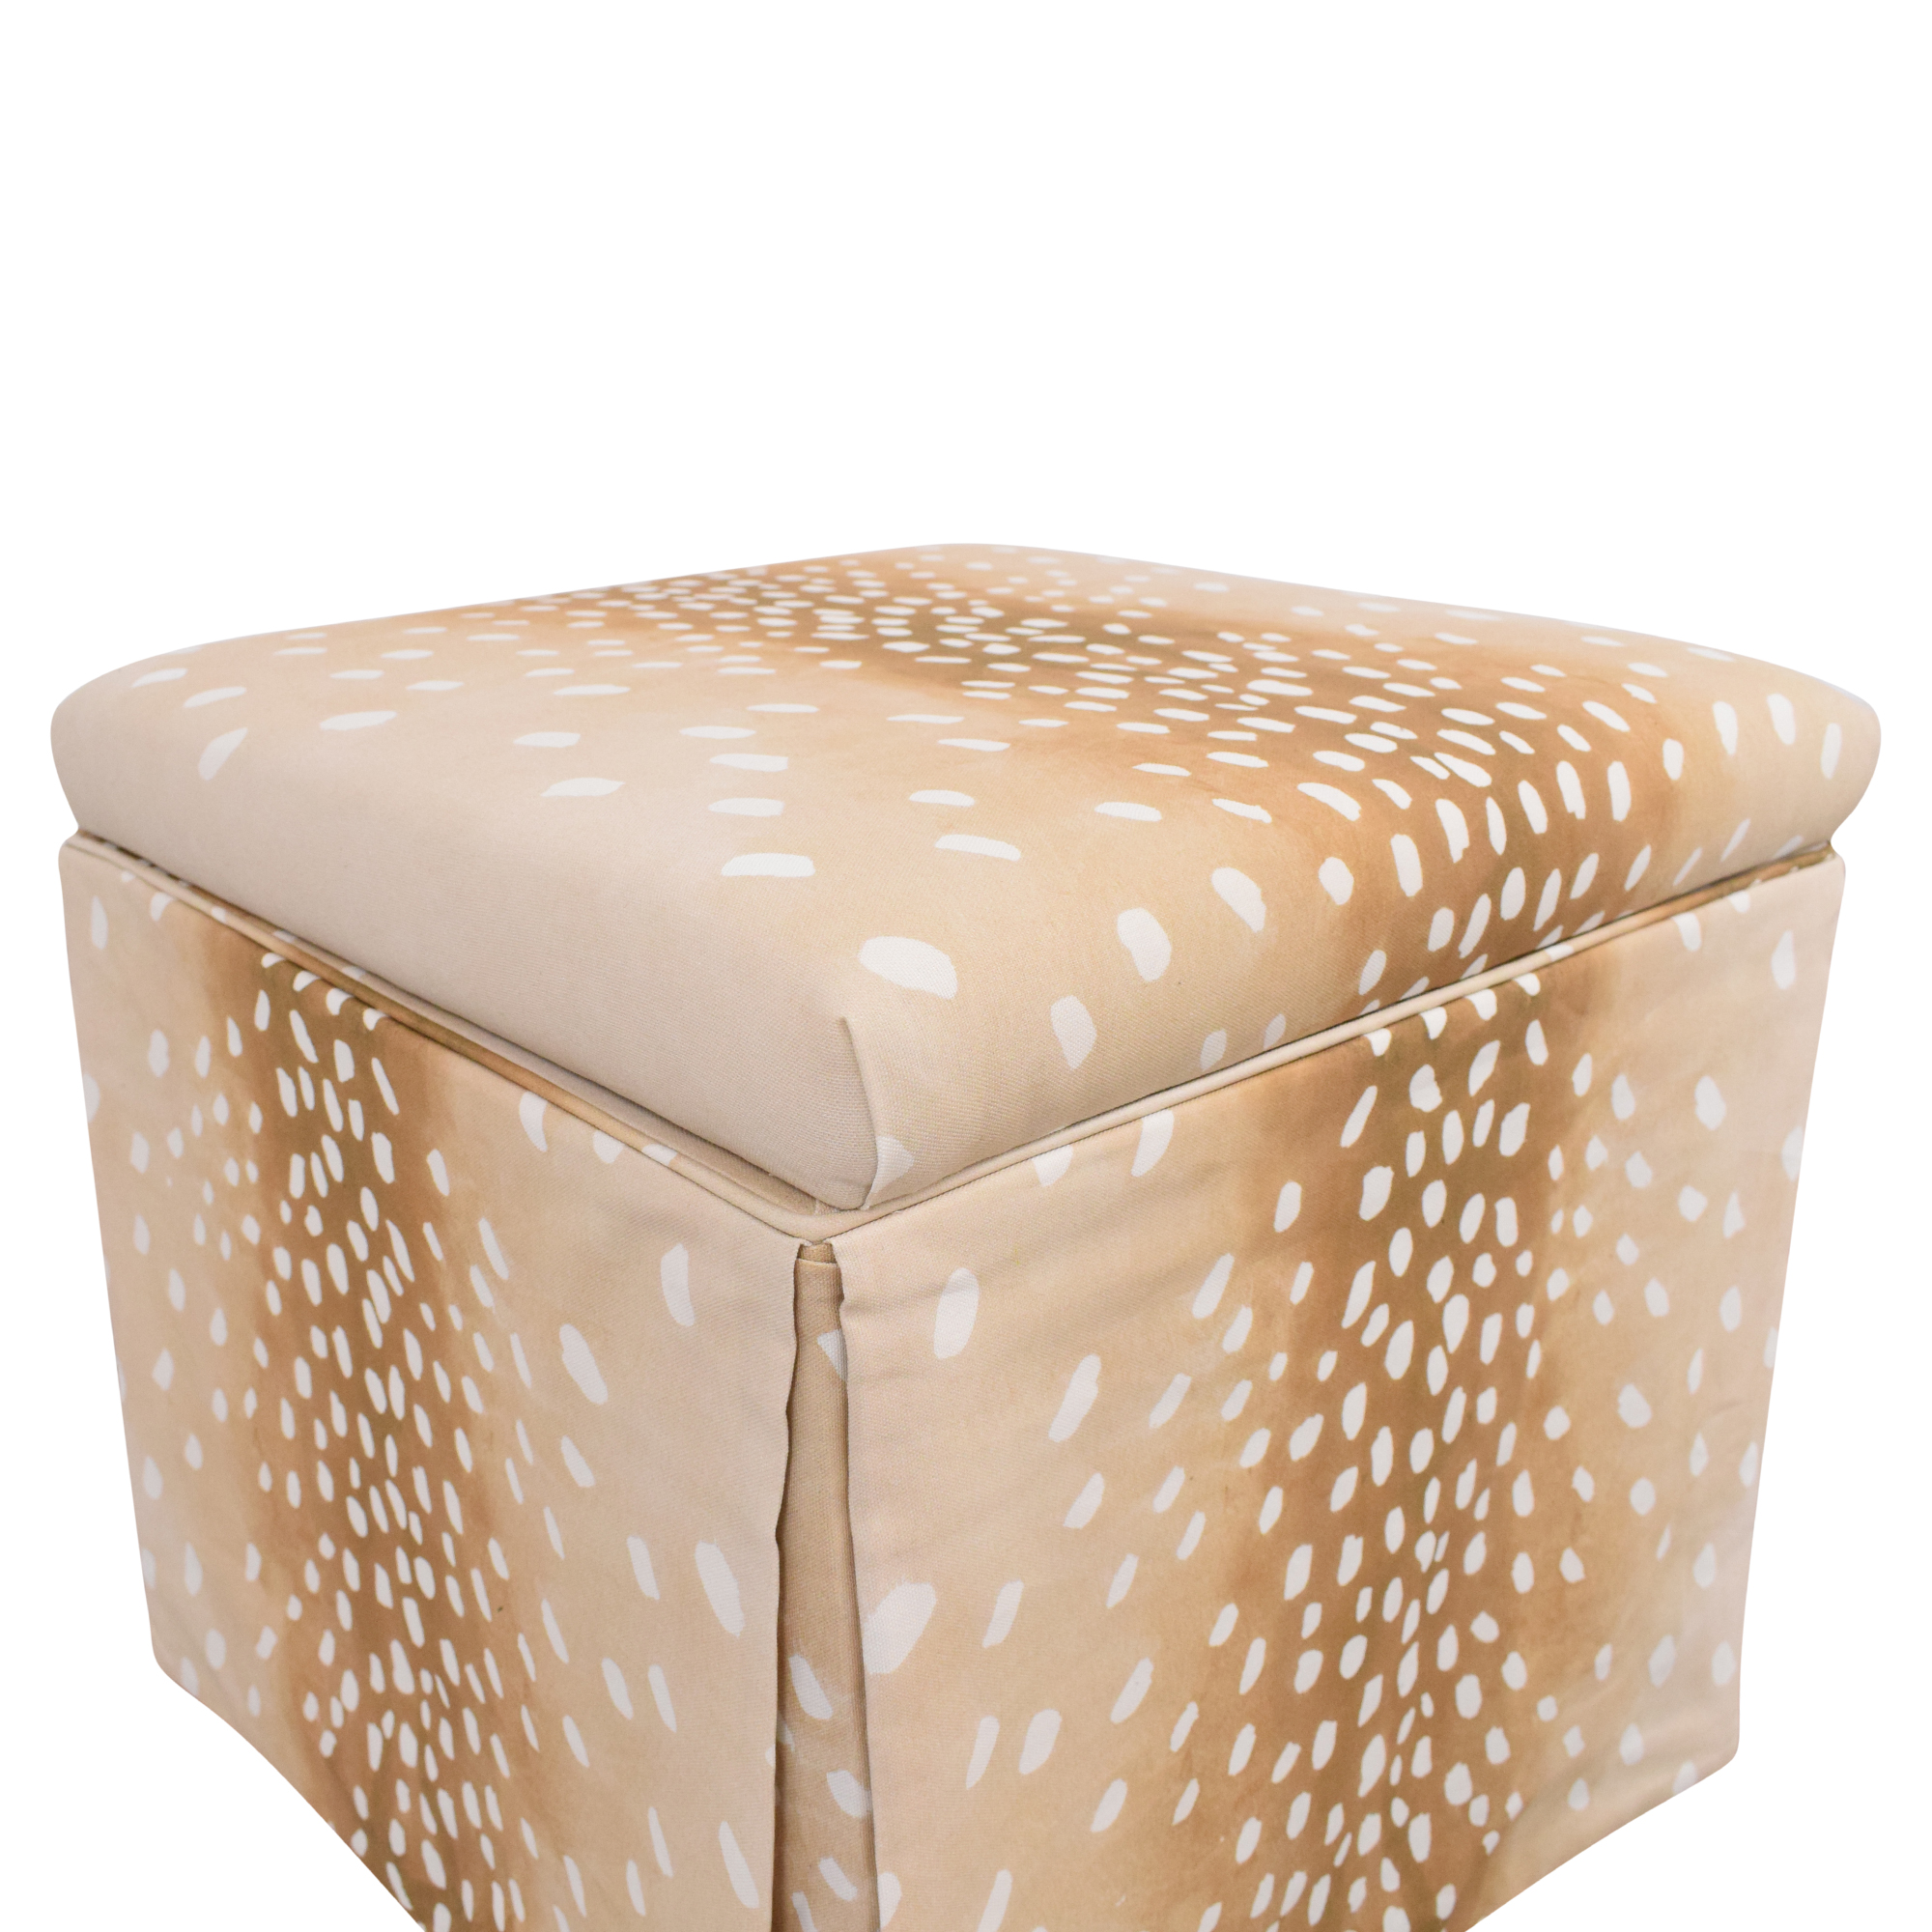 buy The Inside Fawn Skirted Storage Ottoman The Inside